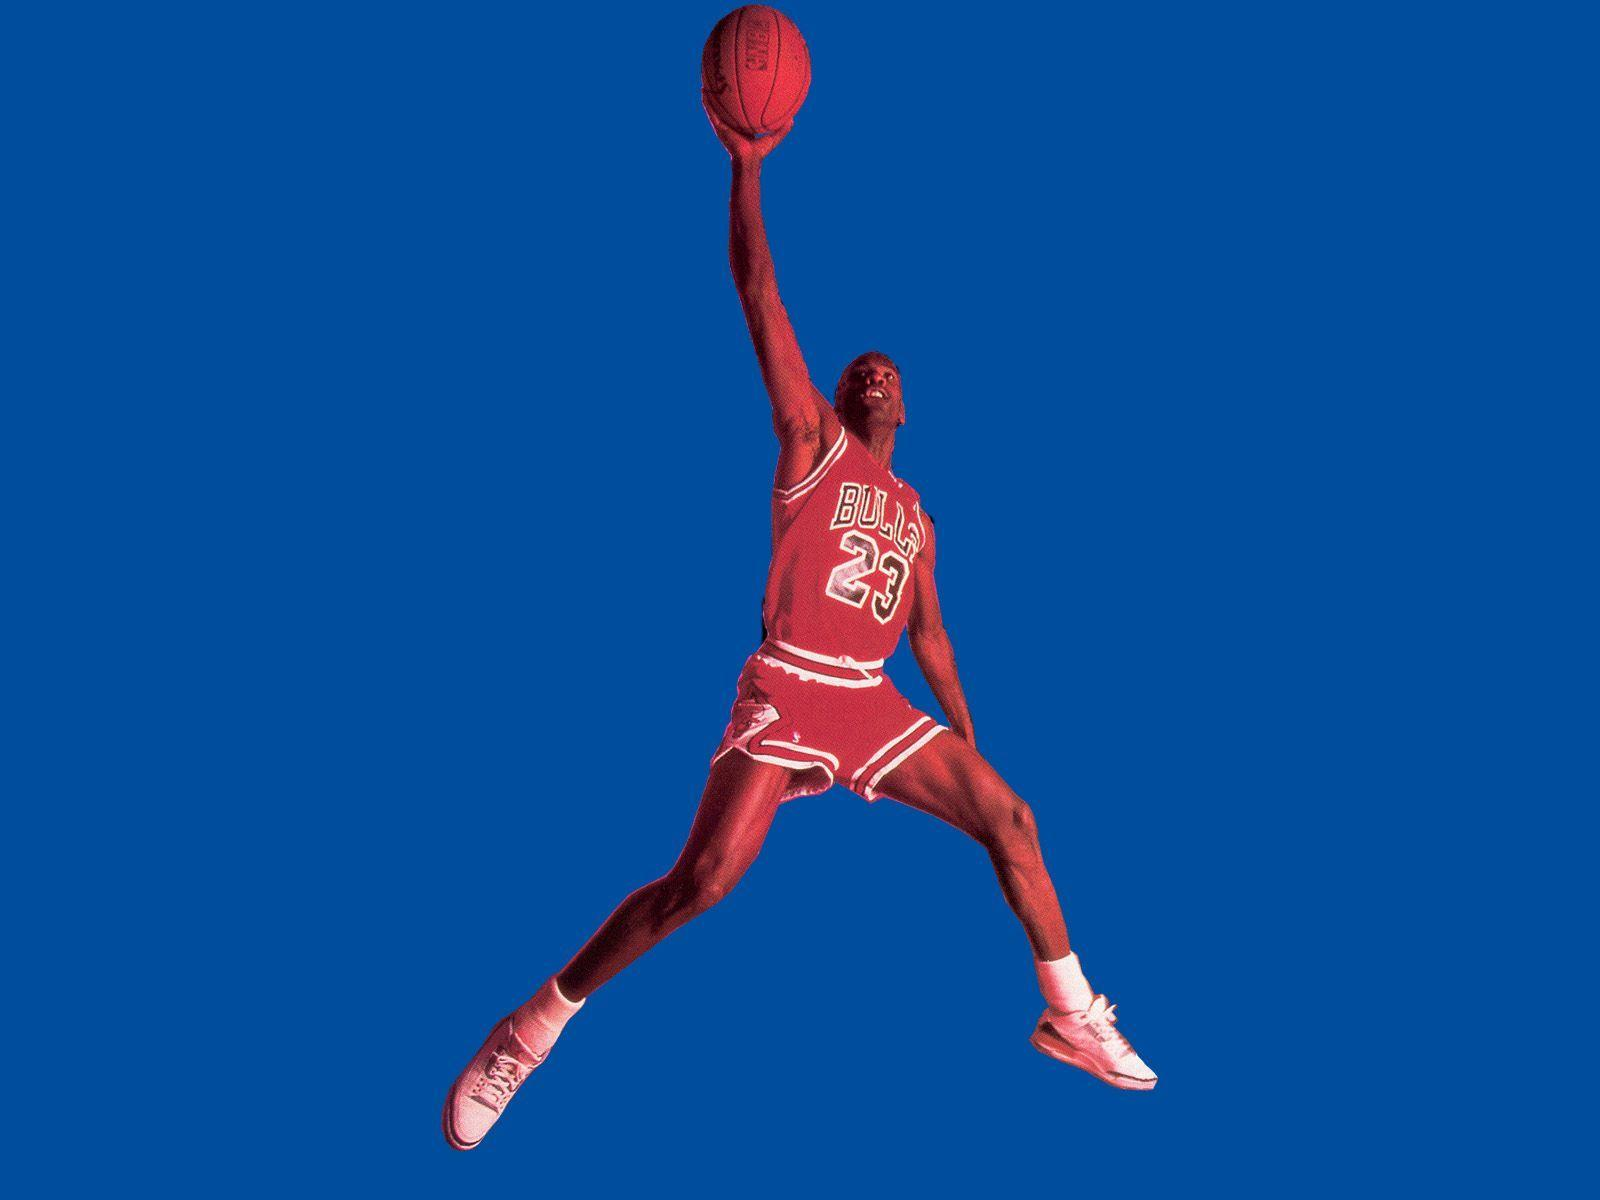 jumpman logo wallpaper mash - photo #24